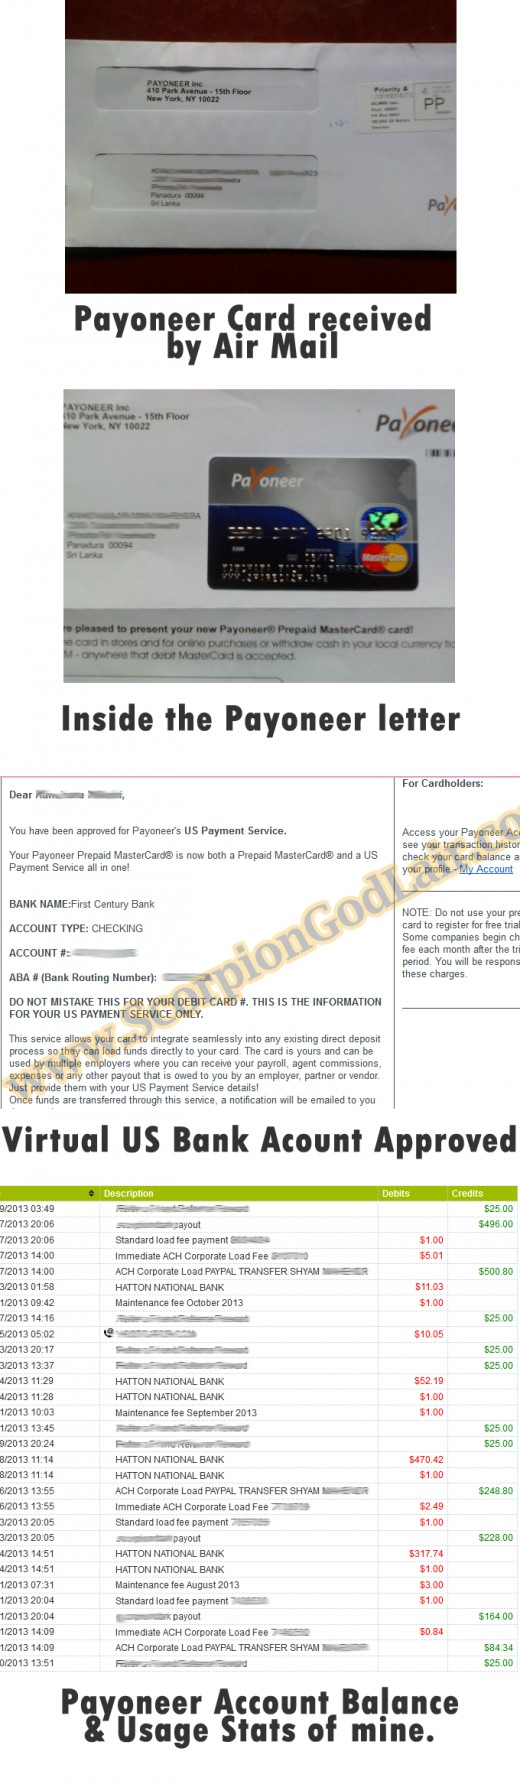 Payoneer Card Letter, Usage Stats & Other Stuff of Mine